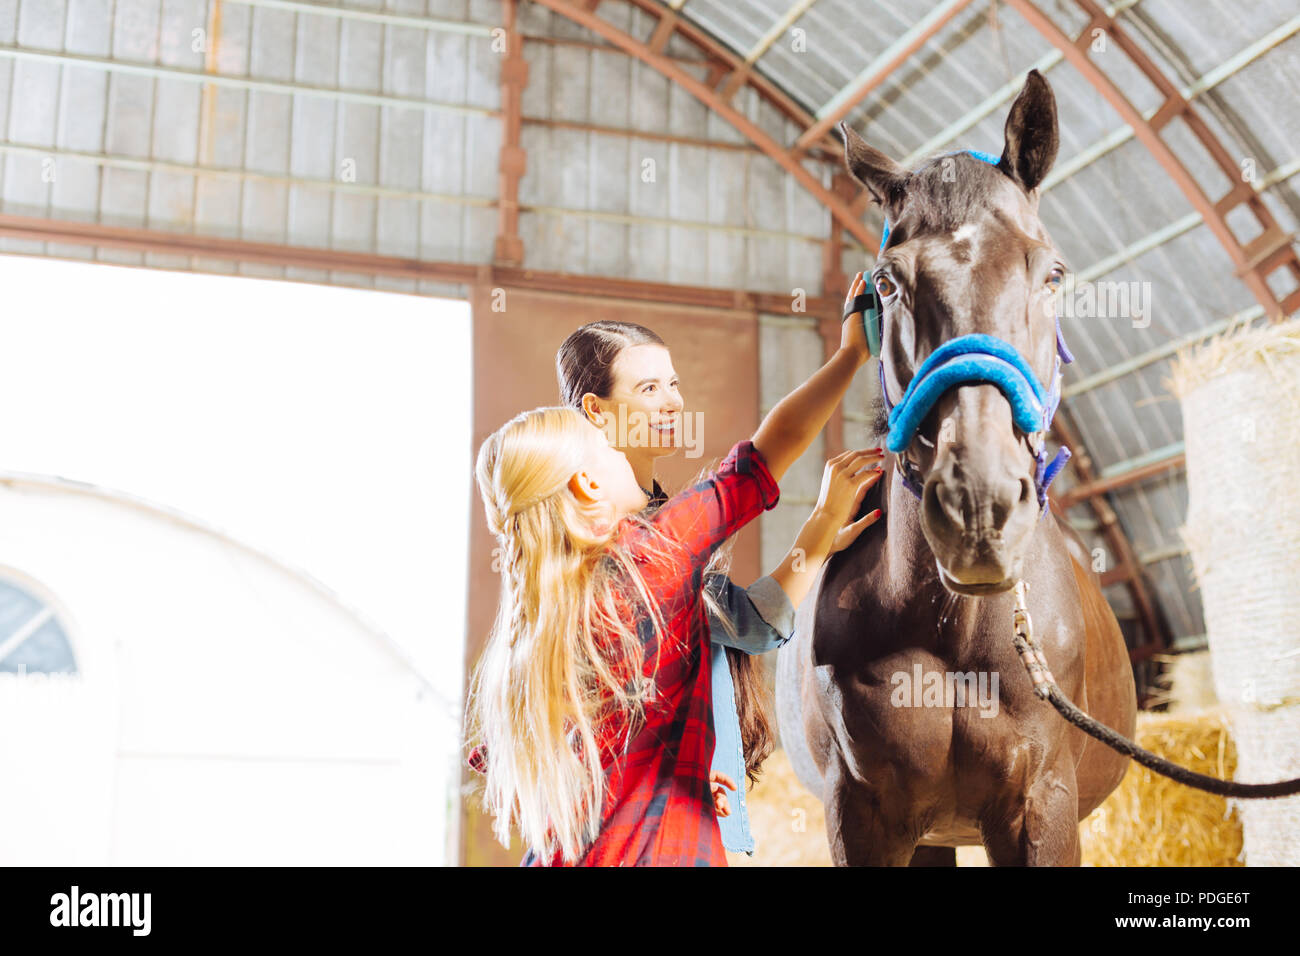 Stylish girl wearing riding boots cleaning racing horse - Stock Image